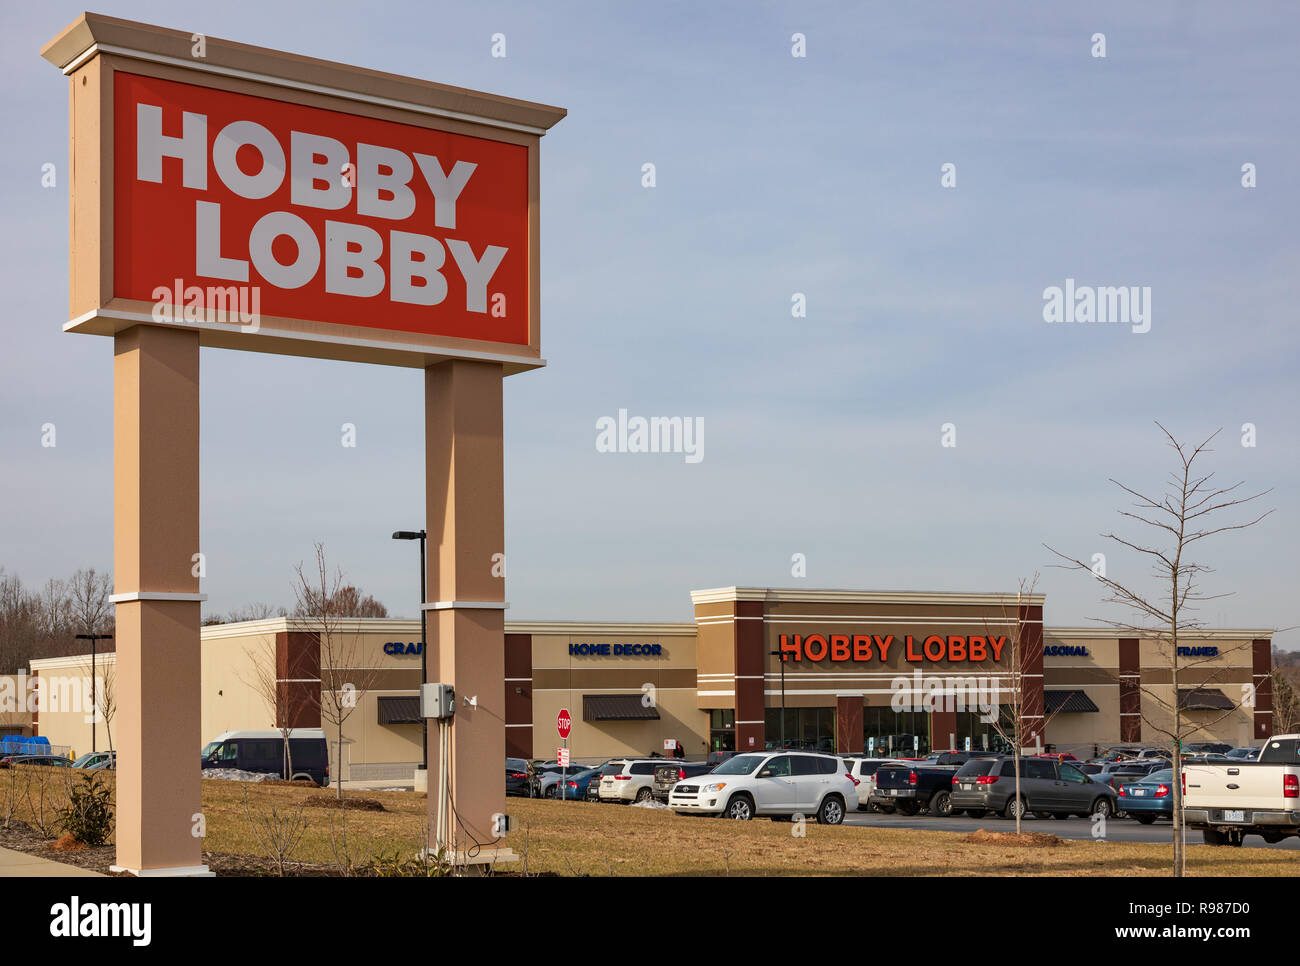 HICKORY, NC, USA-12-19-18: Hobby Lobby, one of more than 800 privately-owned chain of arts and crafts stores. - Stock Image